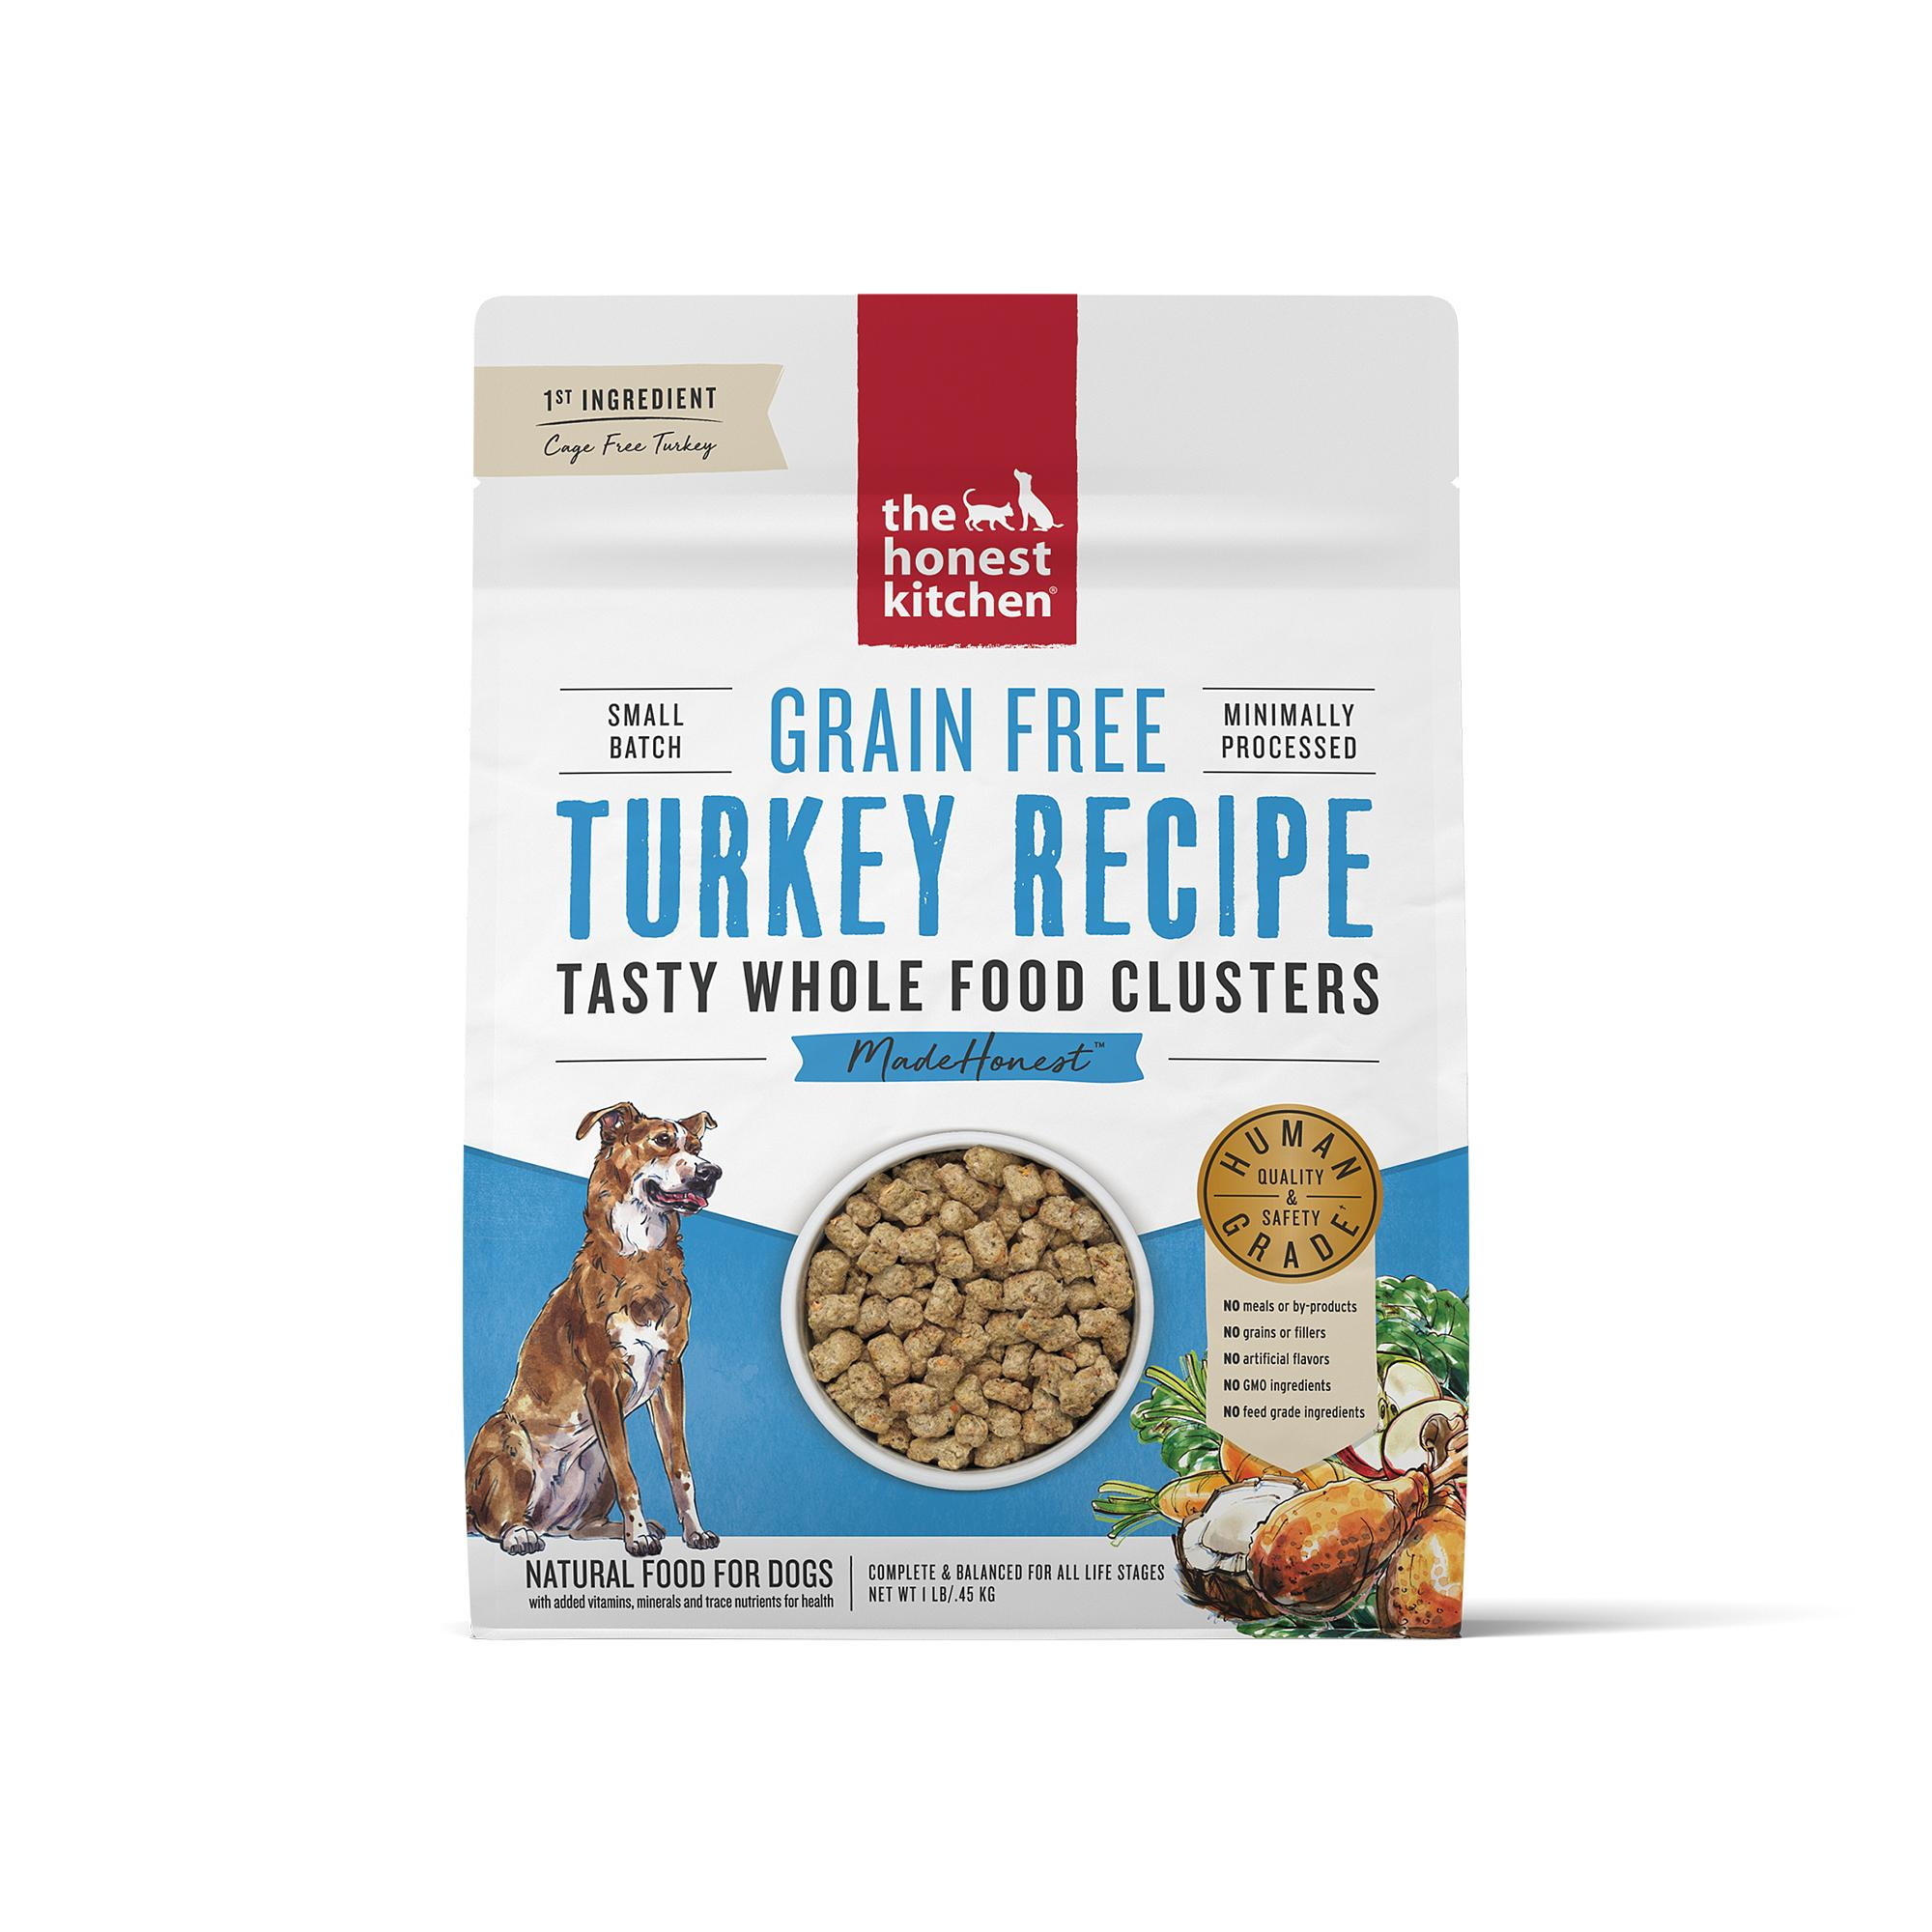 The Honest Kitchen Whole Food Clusters Turkey Grain-Free Dry Dog Food Image